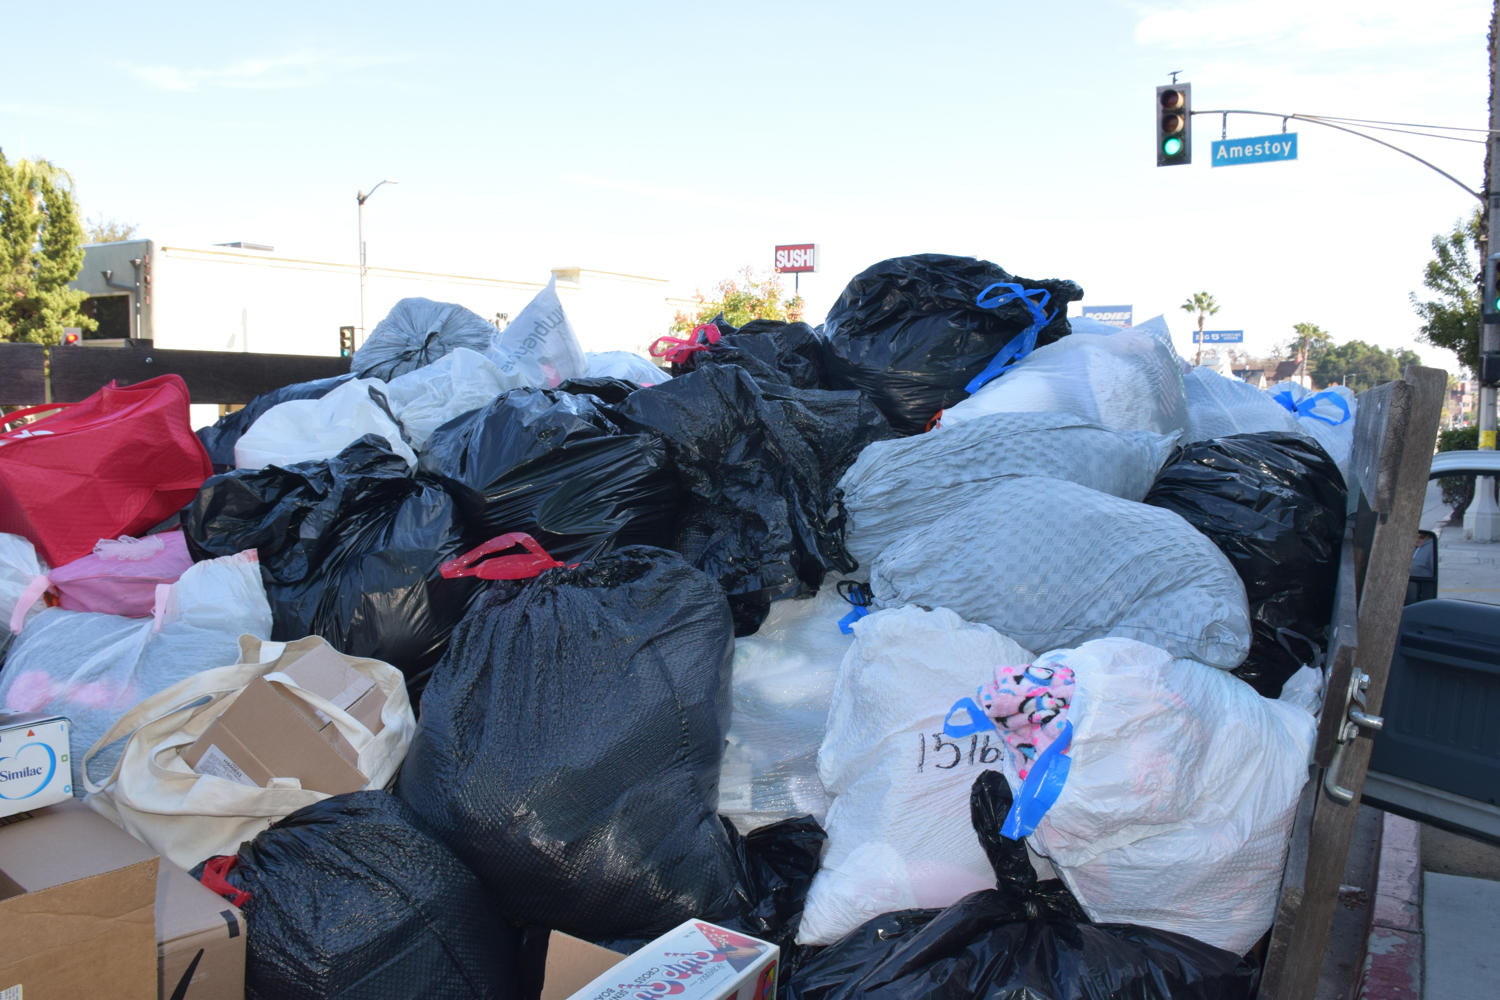 LES donations of clothing for MEND is estimated to be 90 bags.